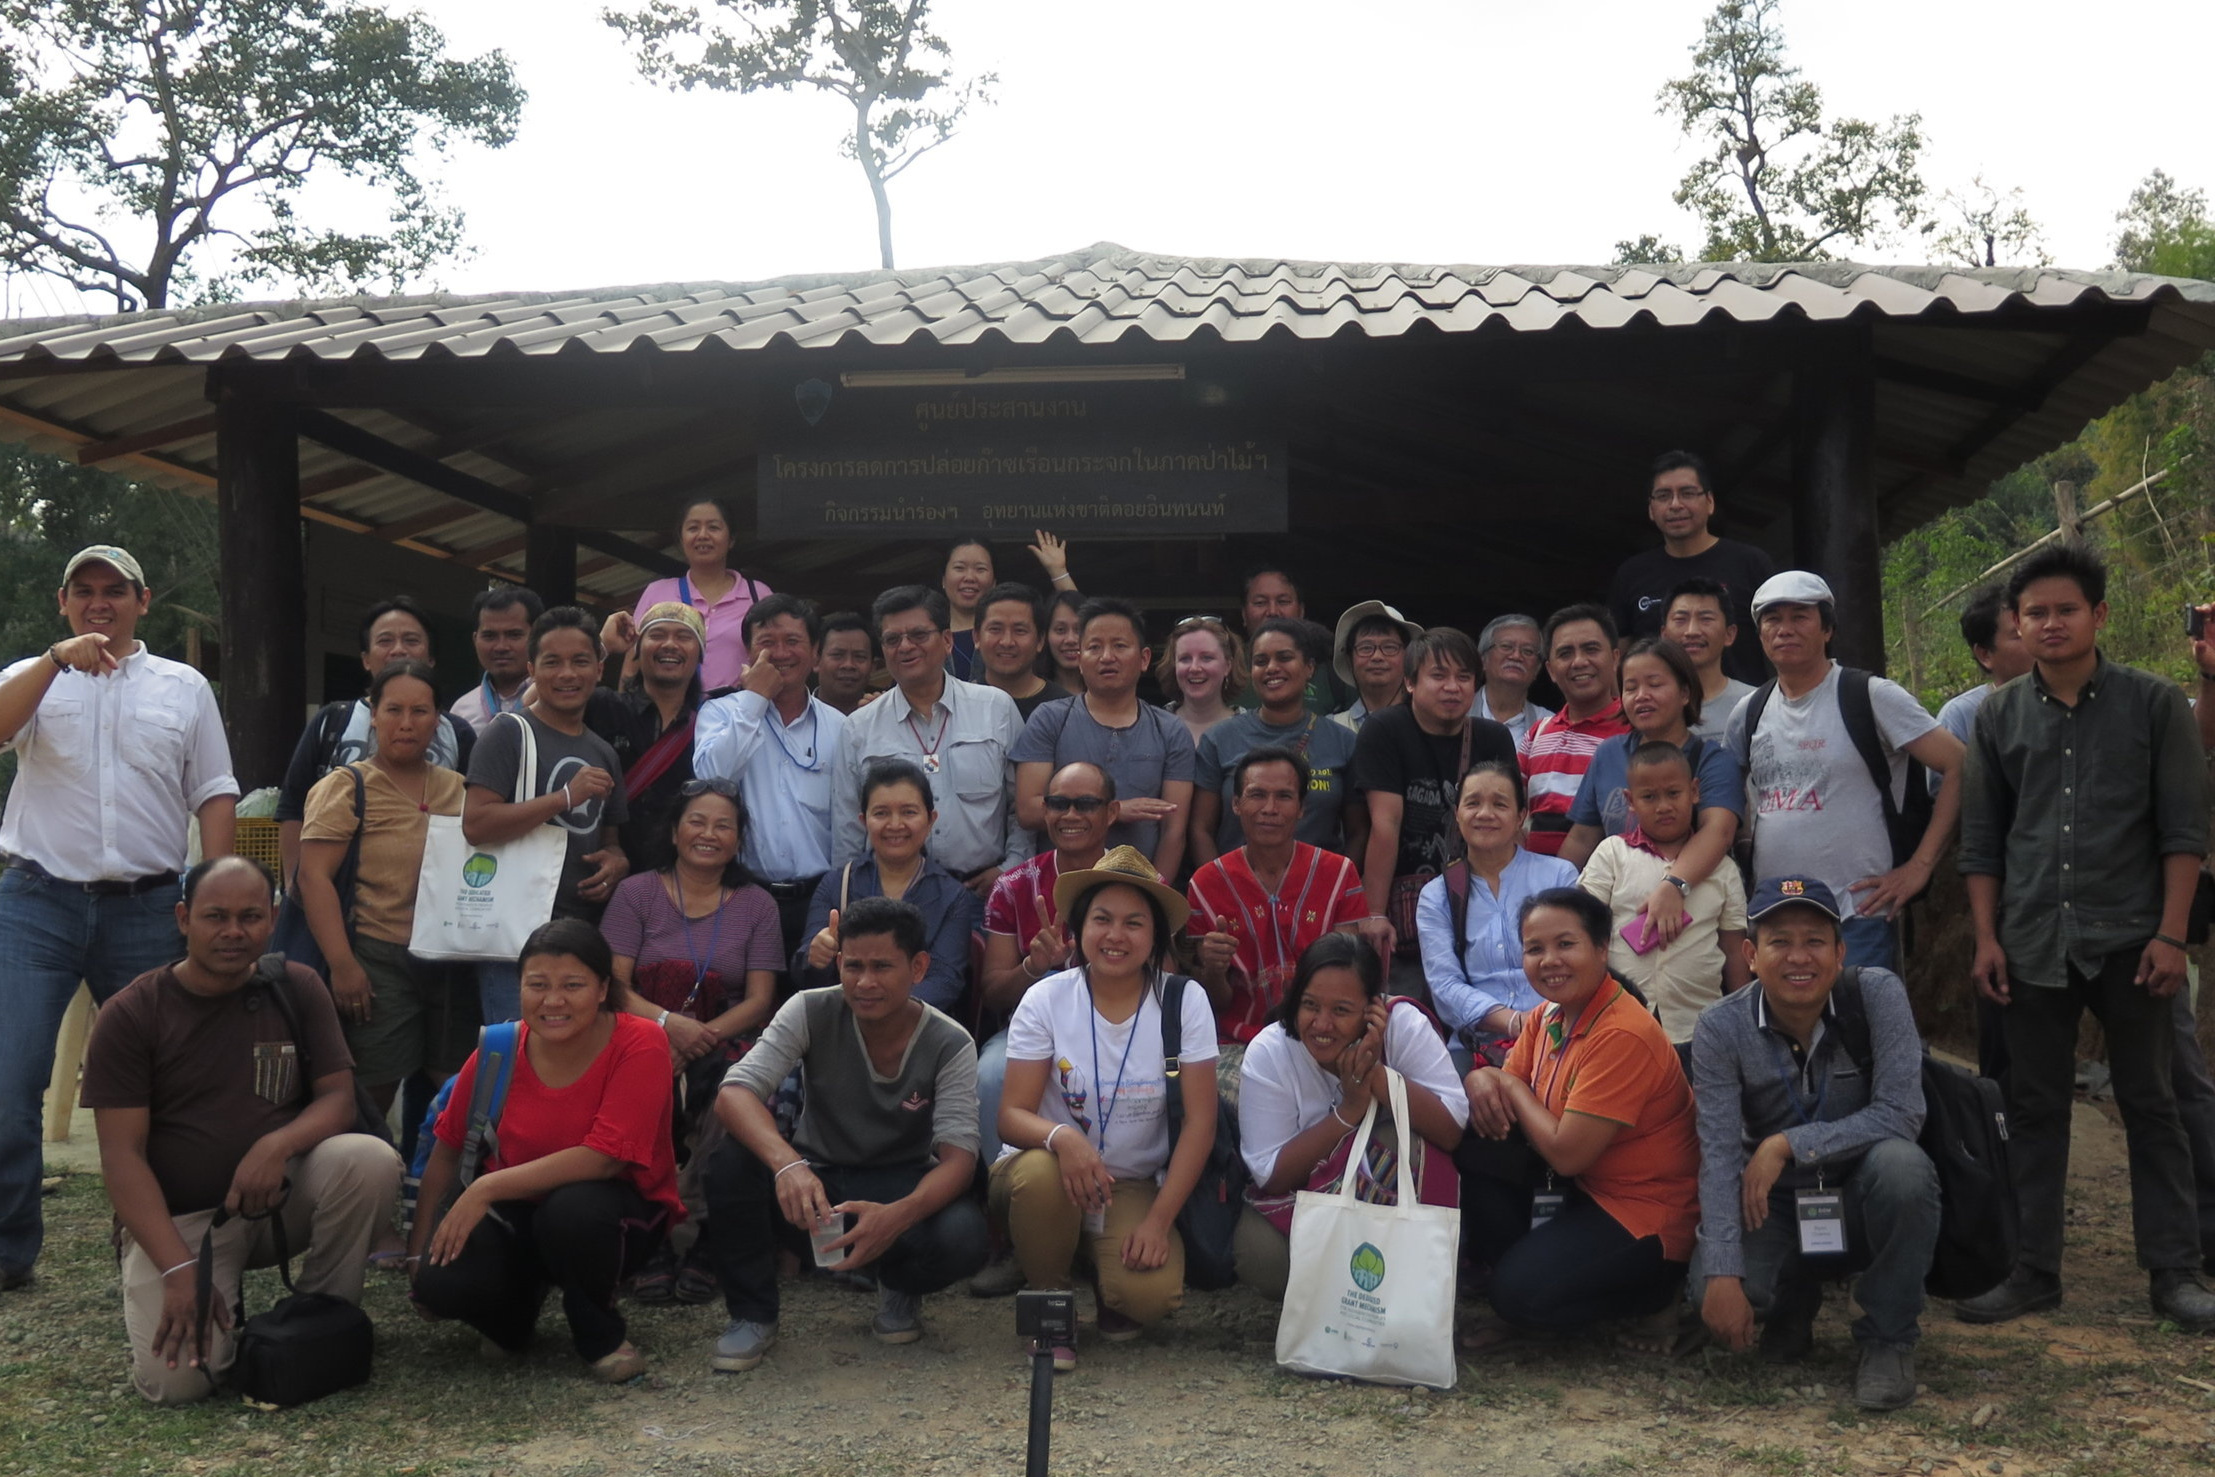 Asia Exchange - Chiang Mai, Thailand - February 201732 IPLC Participants (11 Women)3 Non-IPLC Partners11 Countries RepresentedKey Topics: Climate Policy, Climate Finance, REDD+, Stakeholder Mapping, INDCs, and the LCIP PlatformCommunities Visited: Muang Ang VillageAgenda | Booklet | Report | Video